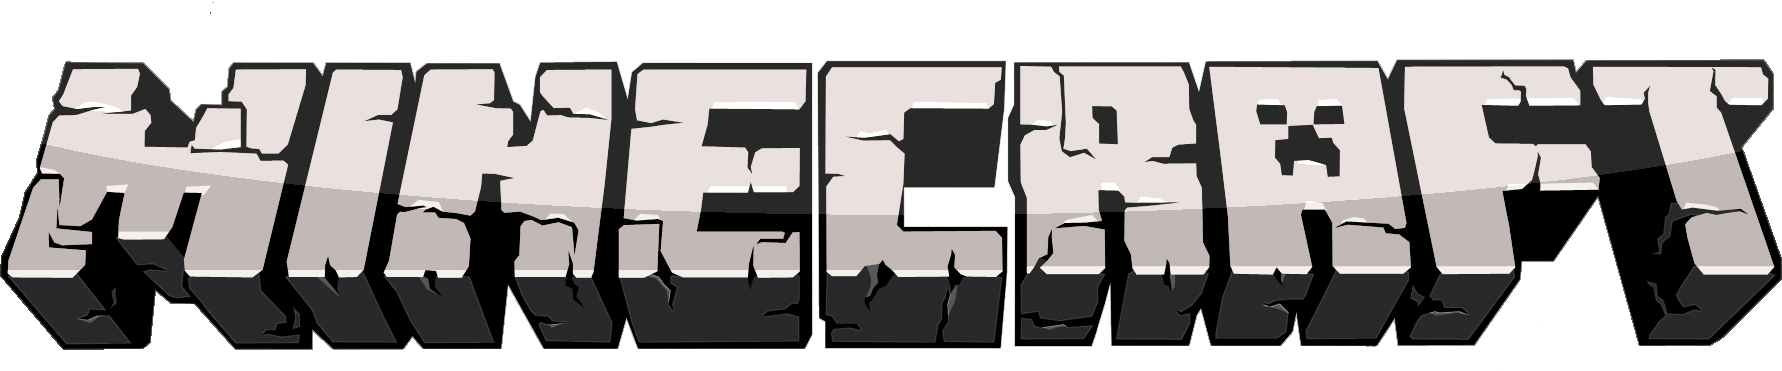 minecraft logo png 10 free Cliparts | Download images on ...